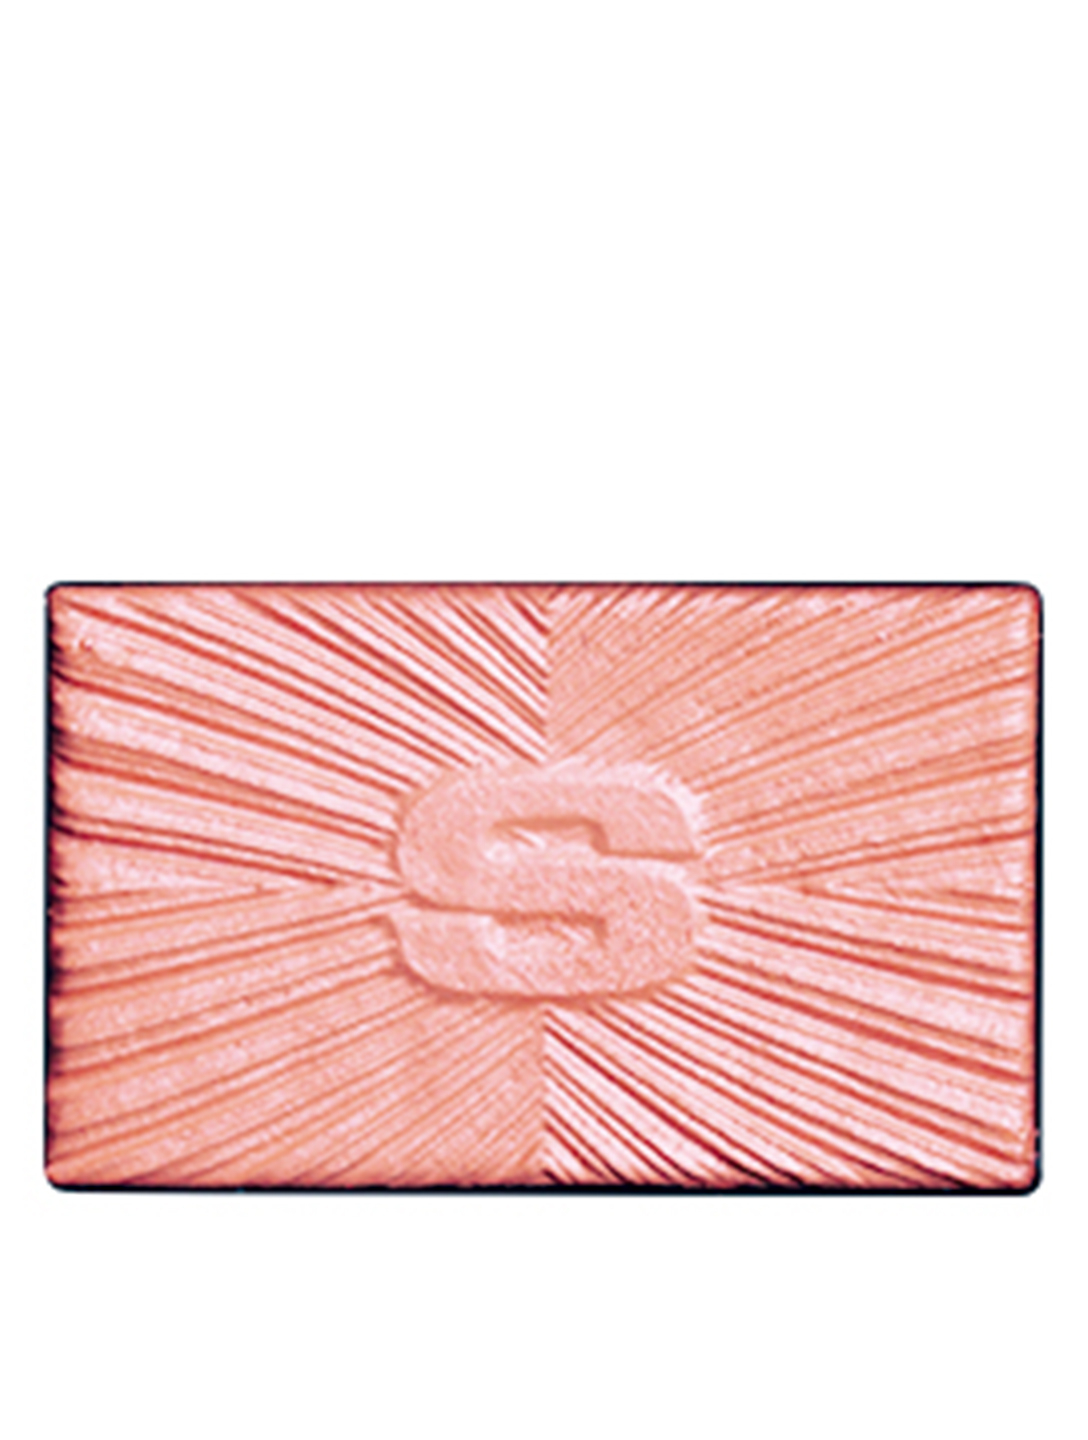 SISLEY-PARIS Les Phyto-Ombres Long-Lasting Luminous Eyeshadow Beauty Pink